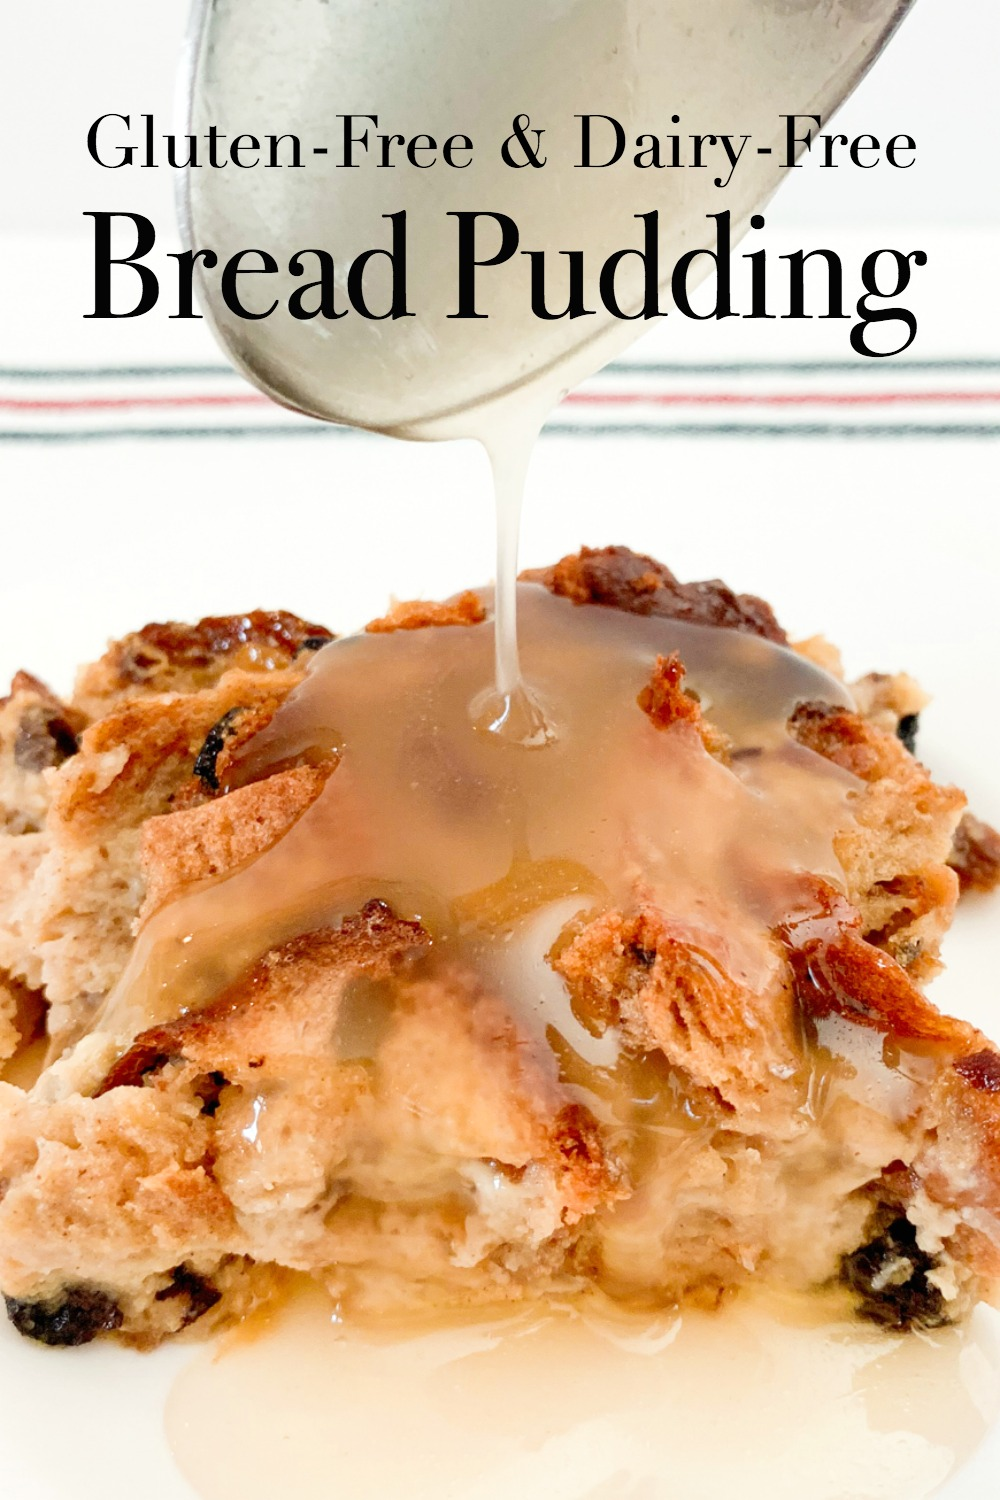 Gluten Free Bread Pudding with a vanilla sauce being drizzled over the top.